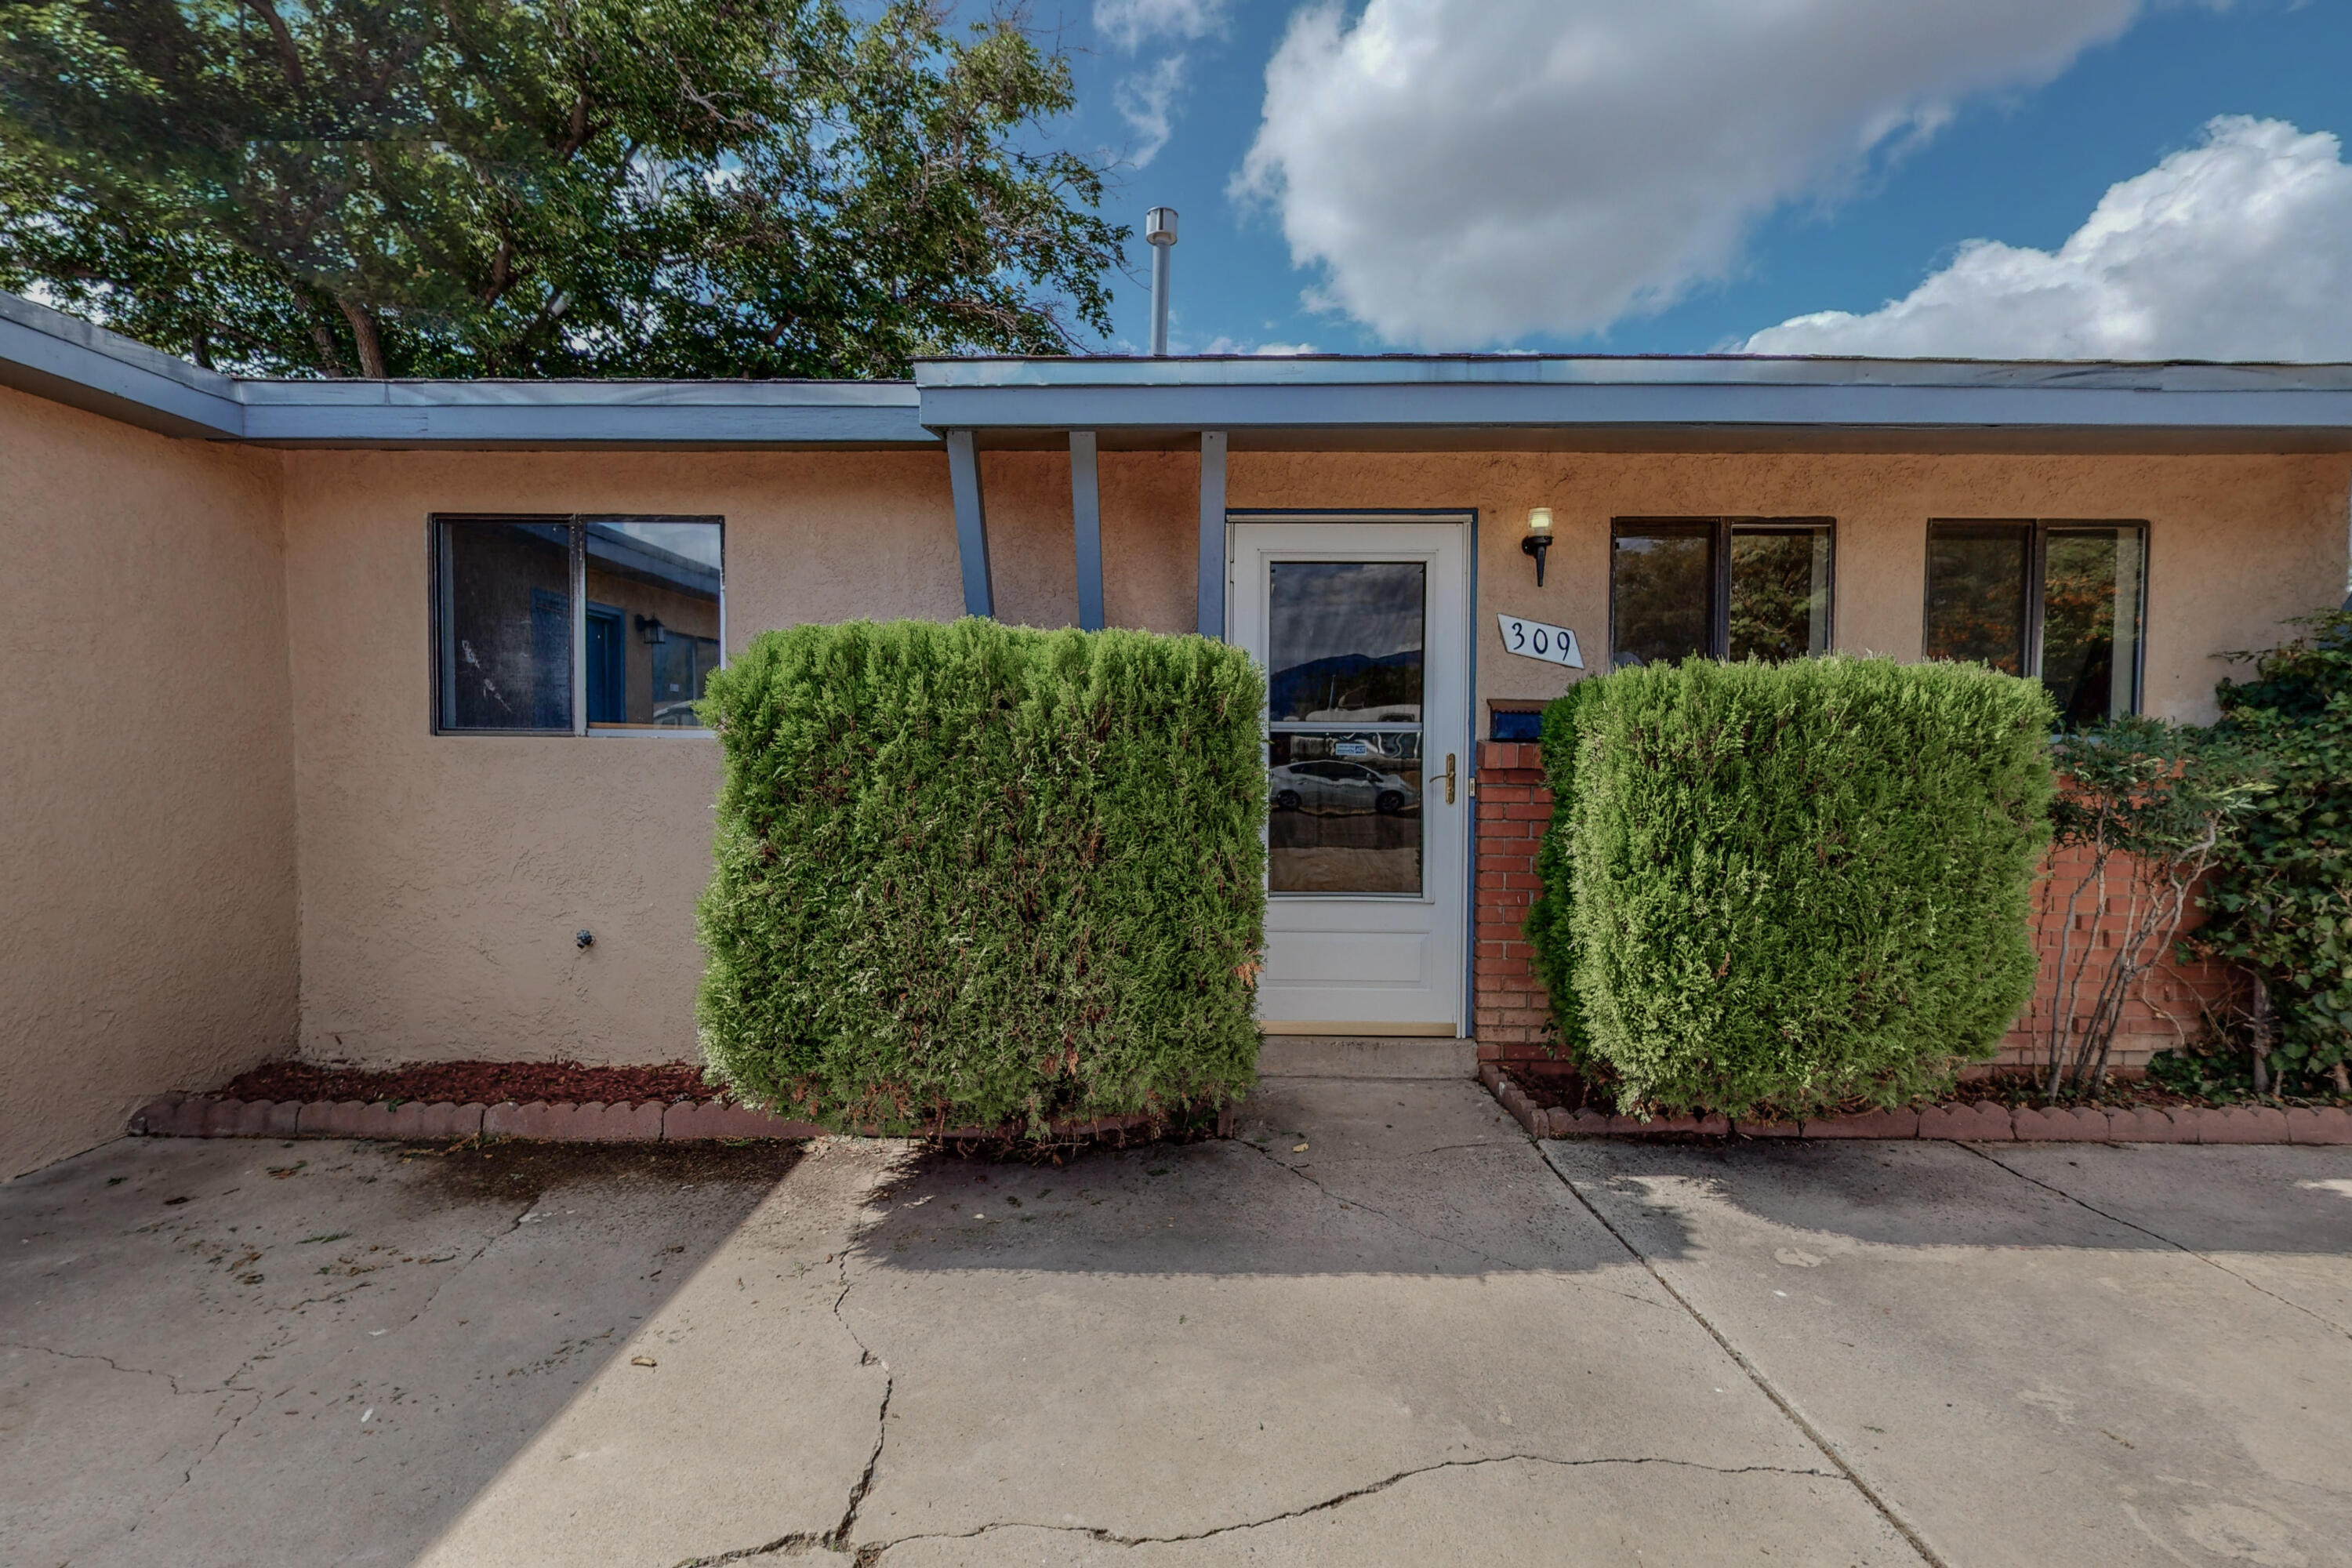 Come check out this 2151 SF Home with 4 Bedrooms, possible 5 Bedrooms or a huge office 21' x 14'. Two Living areas. The Huge 18'' x 16'' Owners Suite includes three large walk in closets. Newly renovated Kitchen, Bathroom and flooring. Two Storage Sheds, Come check out this move in ready property.